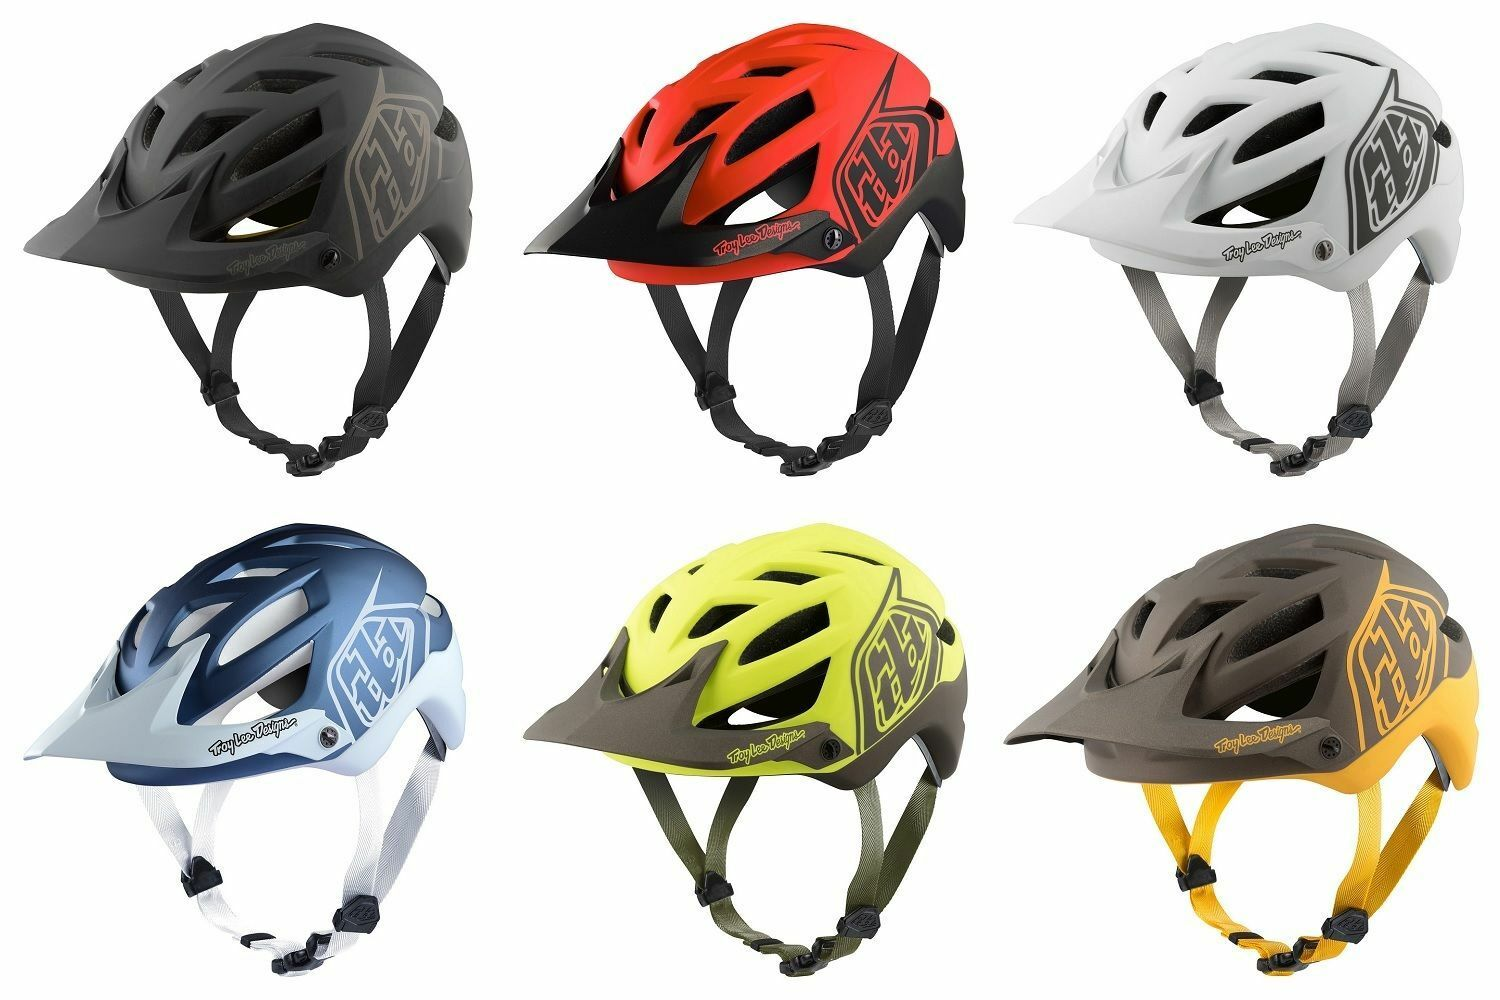 Tld Troy Lee Designs A1 Classico Mips Mountain Bike Casco Bicicletta XC Ciclismo